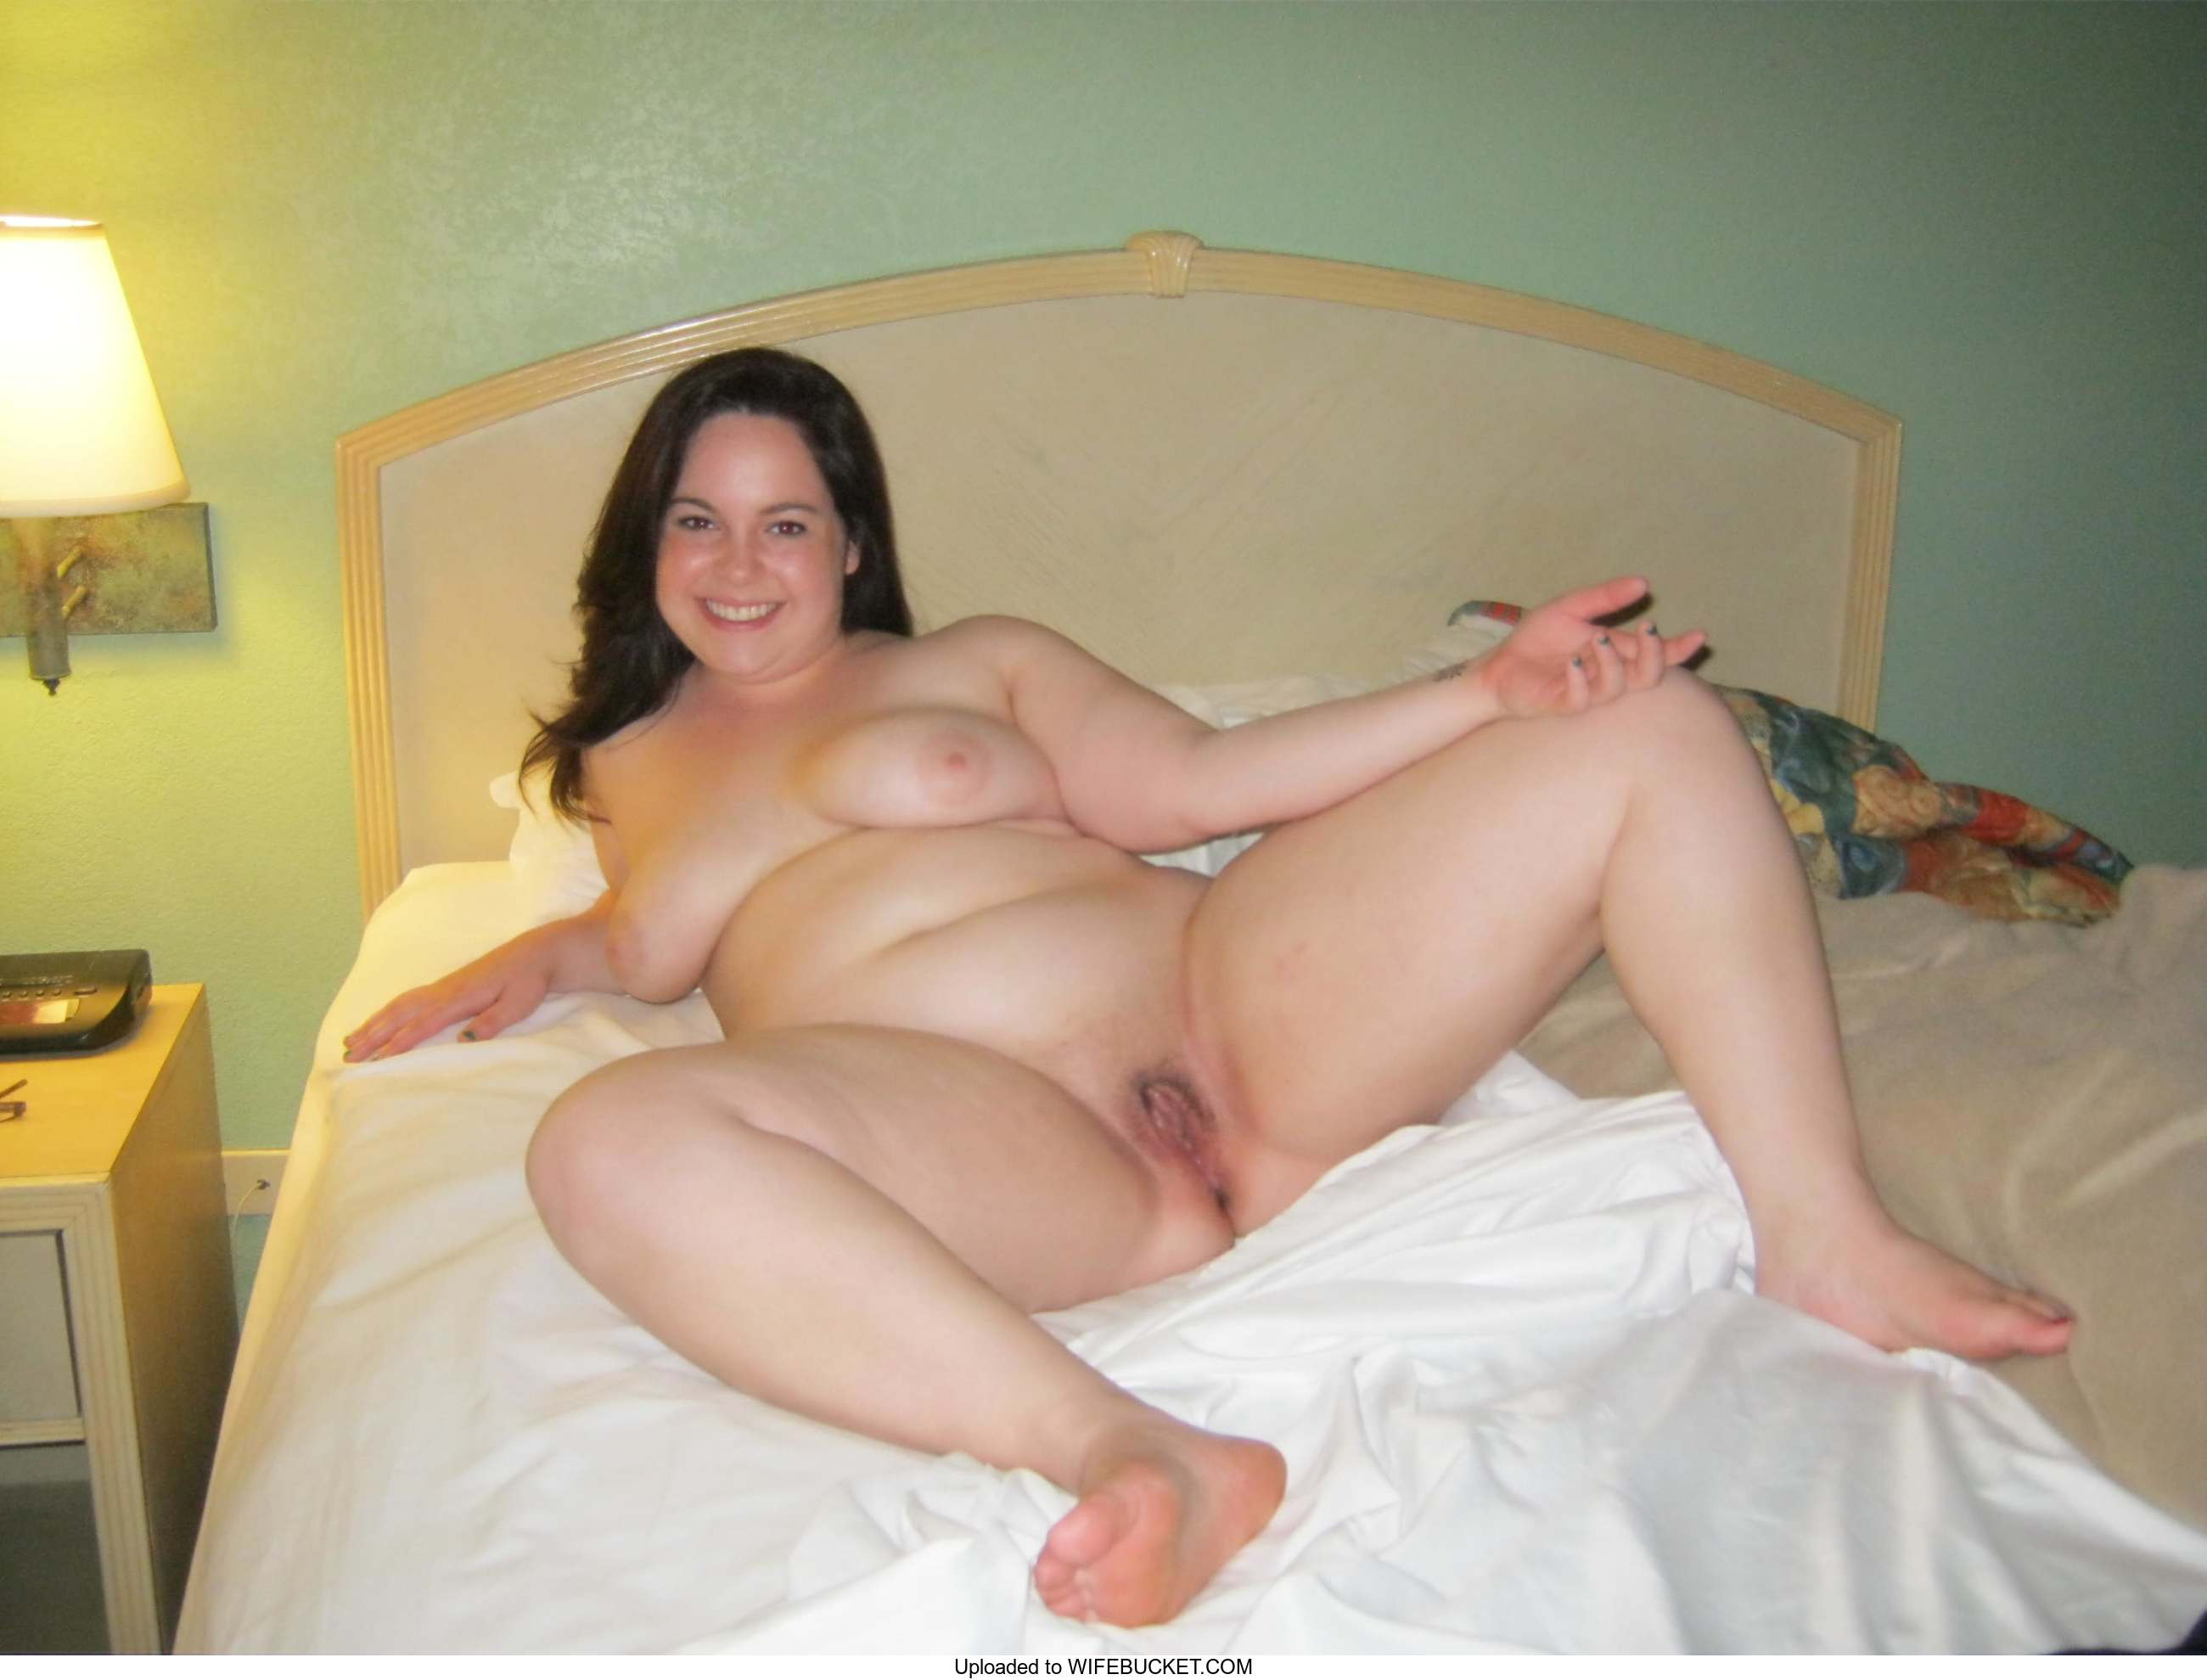 39 User-Uploaded Photos Of Real Wives Naked  Wifebucket -7435